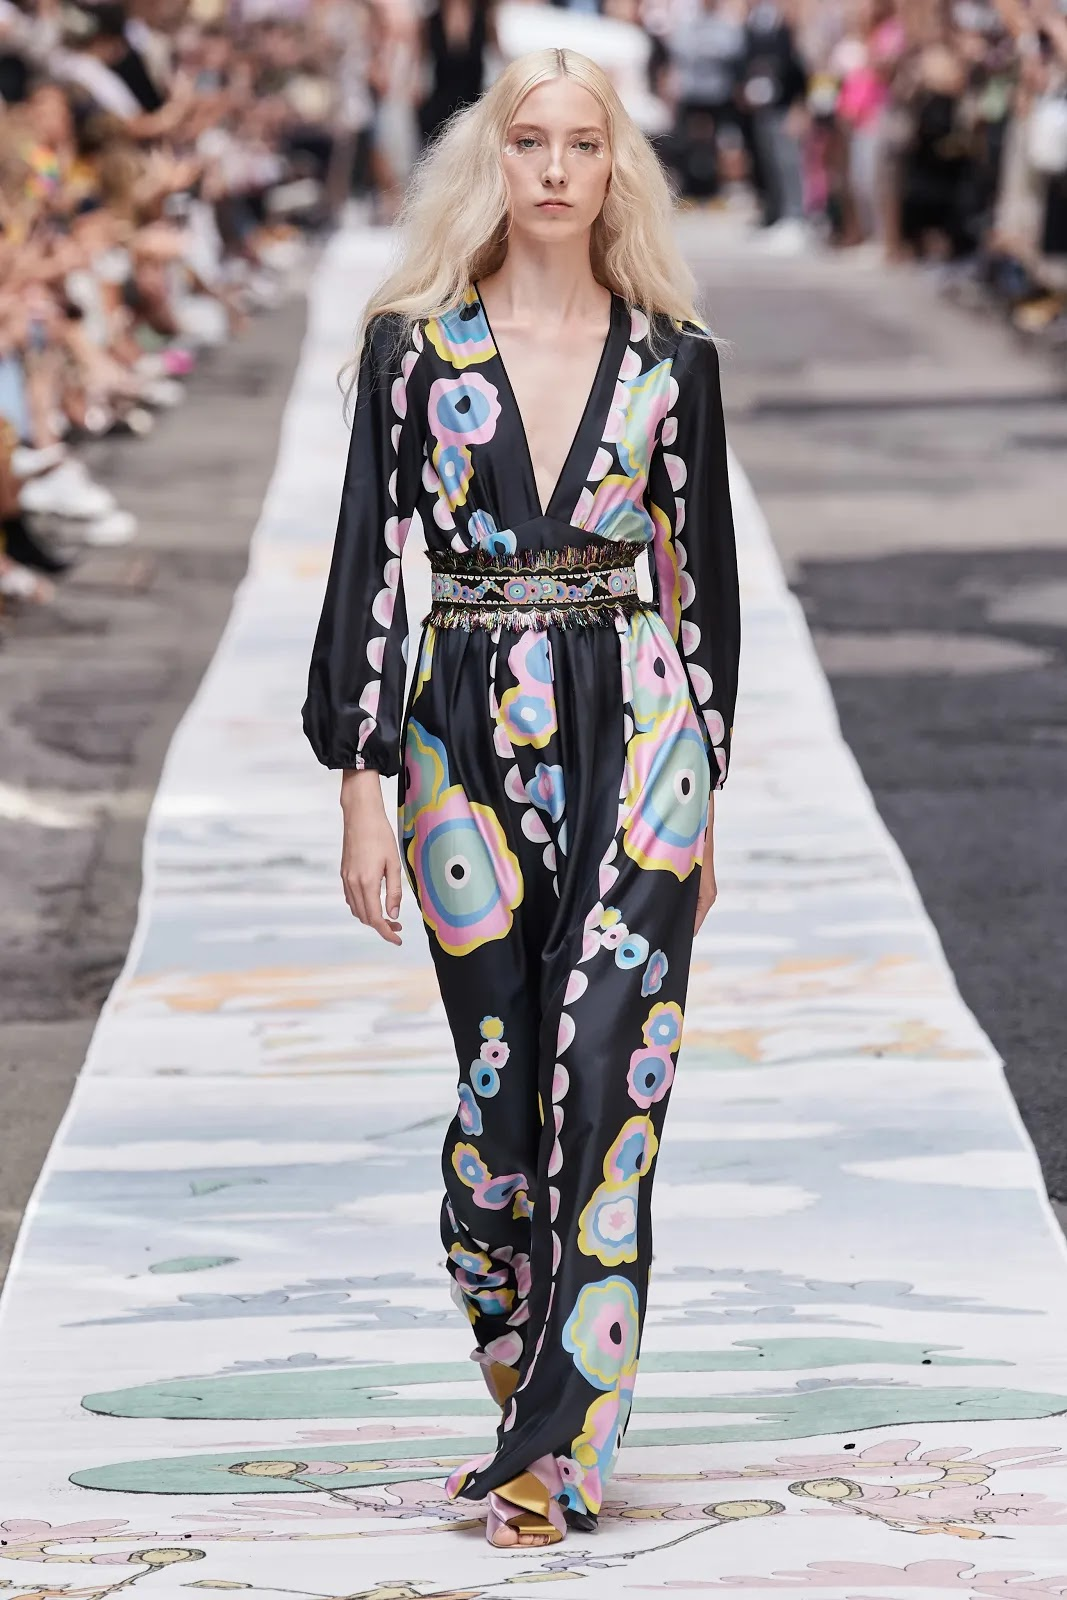 Cynthia Rowley Spring 2020 Ready-to-Wear Fashion Show